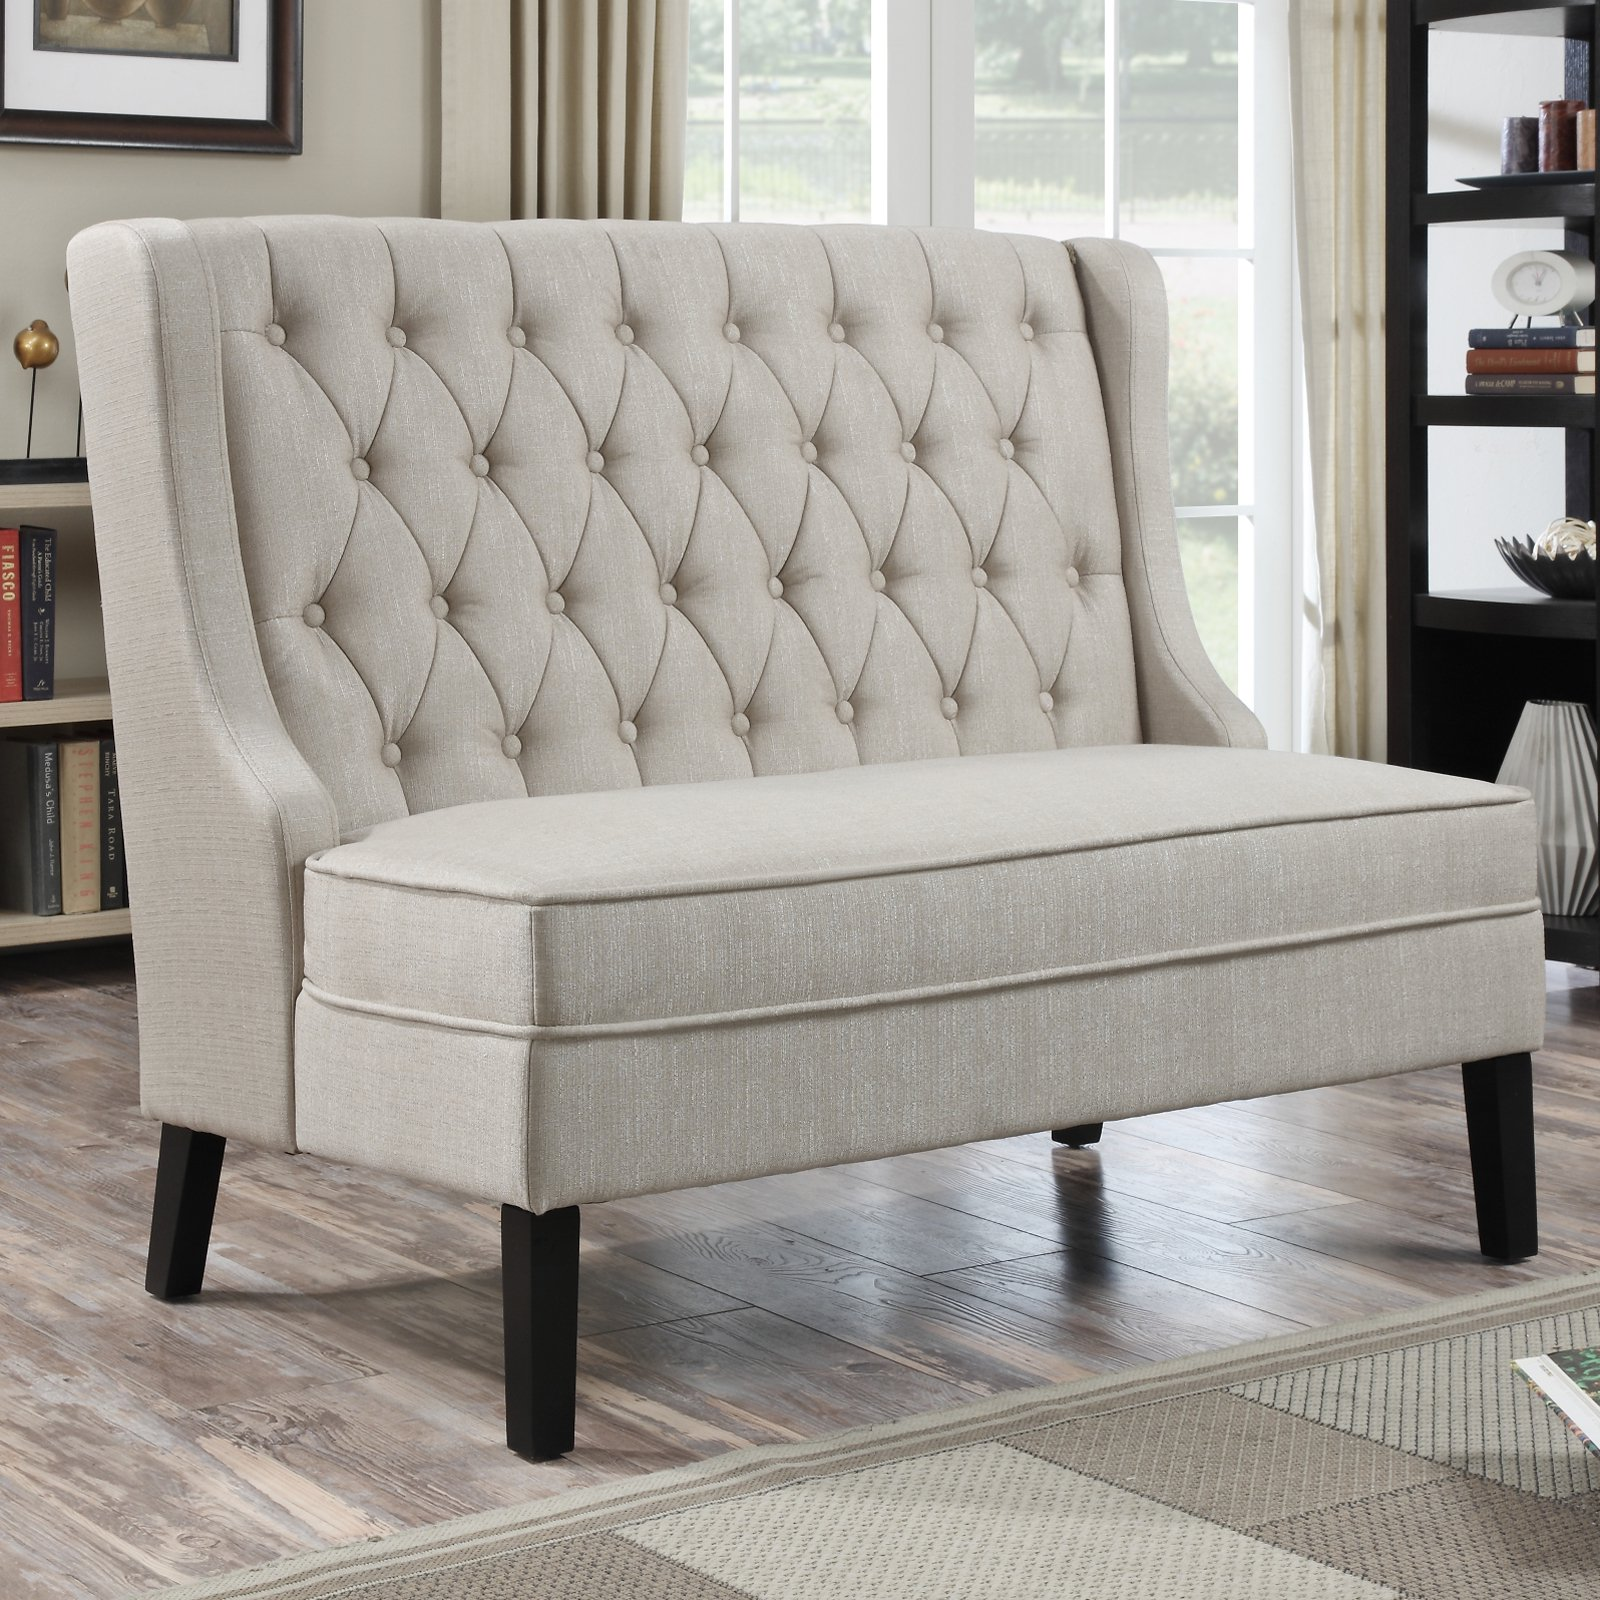 Pulaski Accentircs Home Sidney Settee Upholstered Banquette Sofa Couch,  Oatmeal